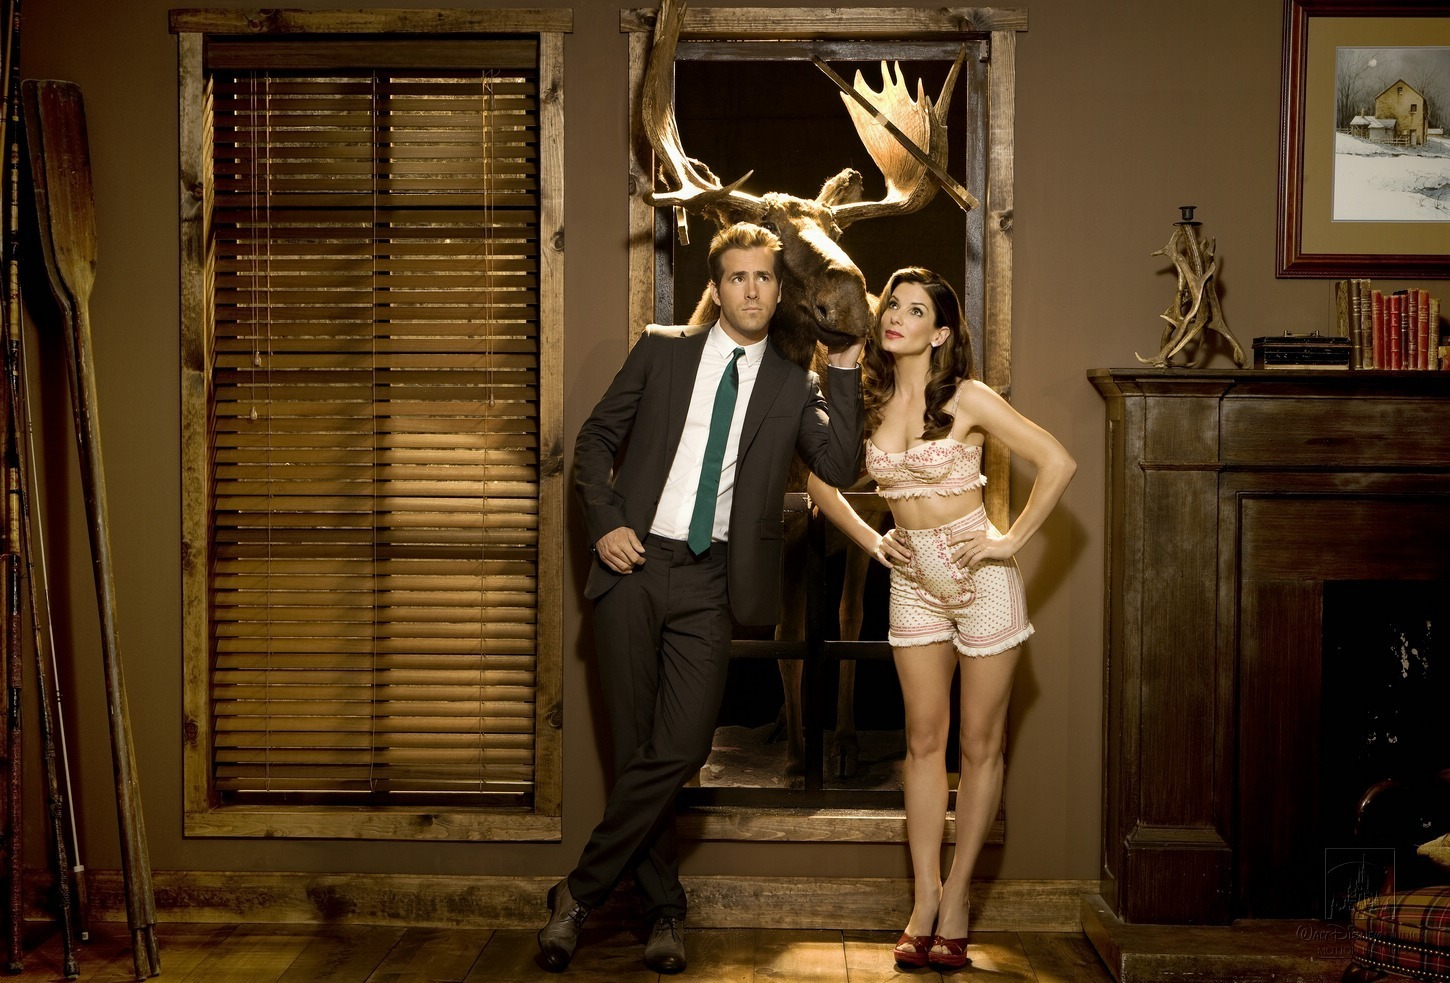 Sandra Bullock&Ryan Reynolds The Proposal' Photoshoot